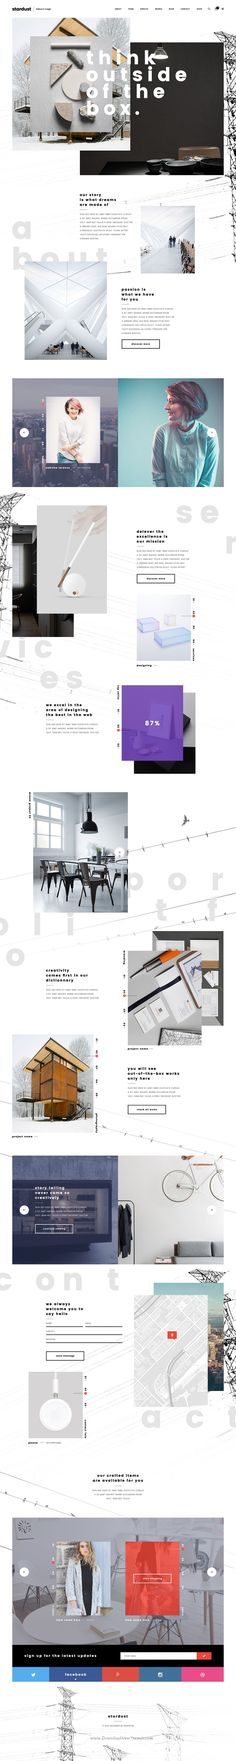 stardust is a Professionally designed Out-of-the-Box Creative PSD #Template for classy Portfolio Sites or Creative #Agency #website to download  click on the image.